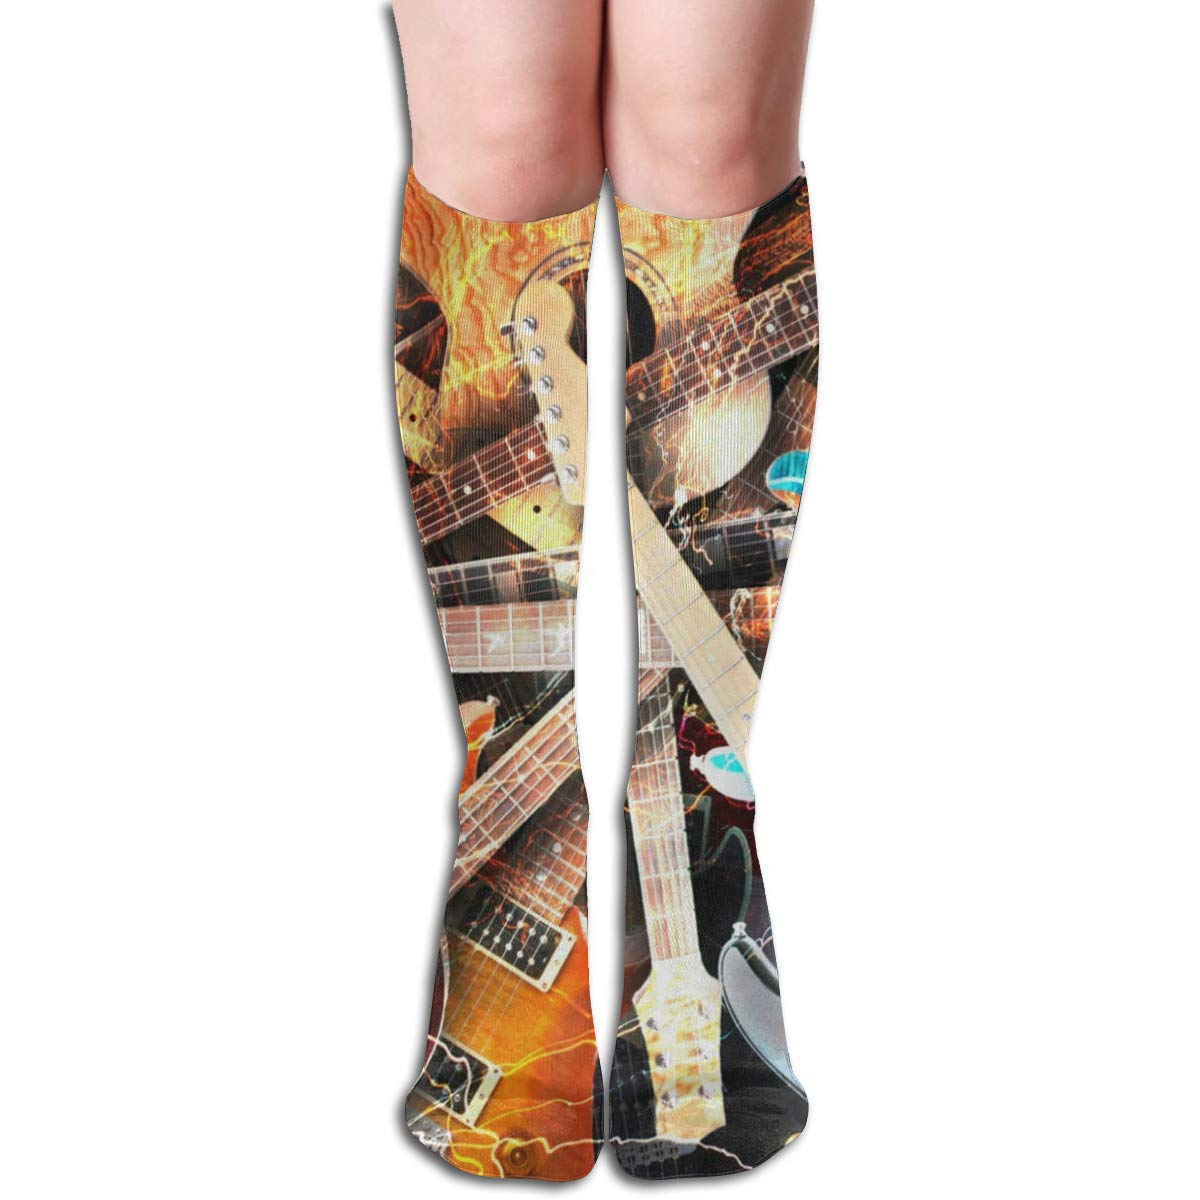 Girls Socks Over Knee Magical Outer Space Winter Warmth Inspiring For Party